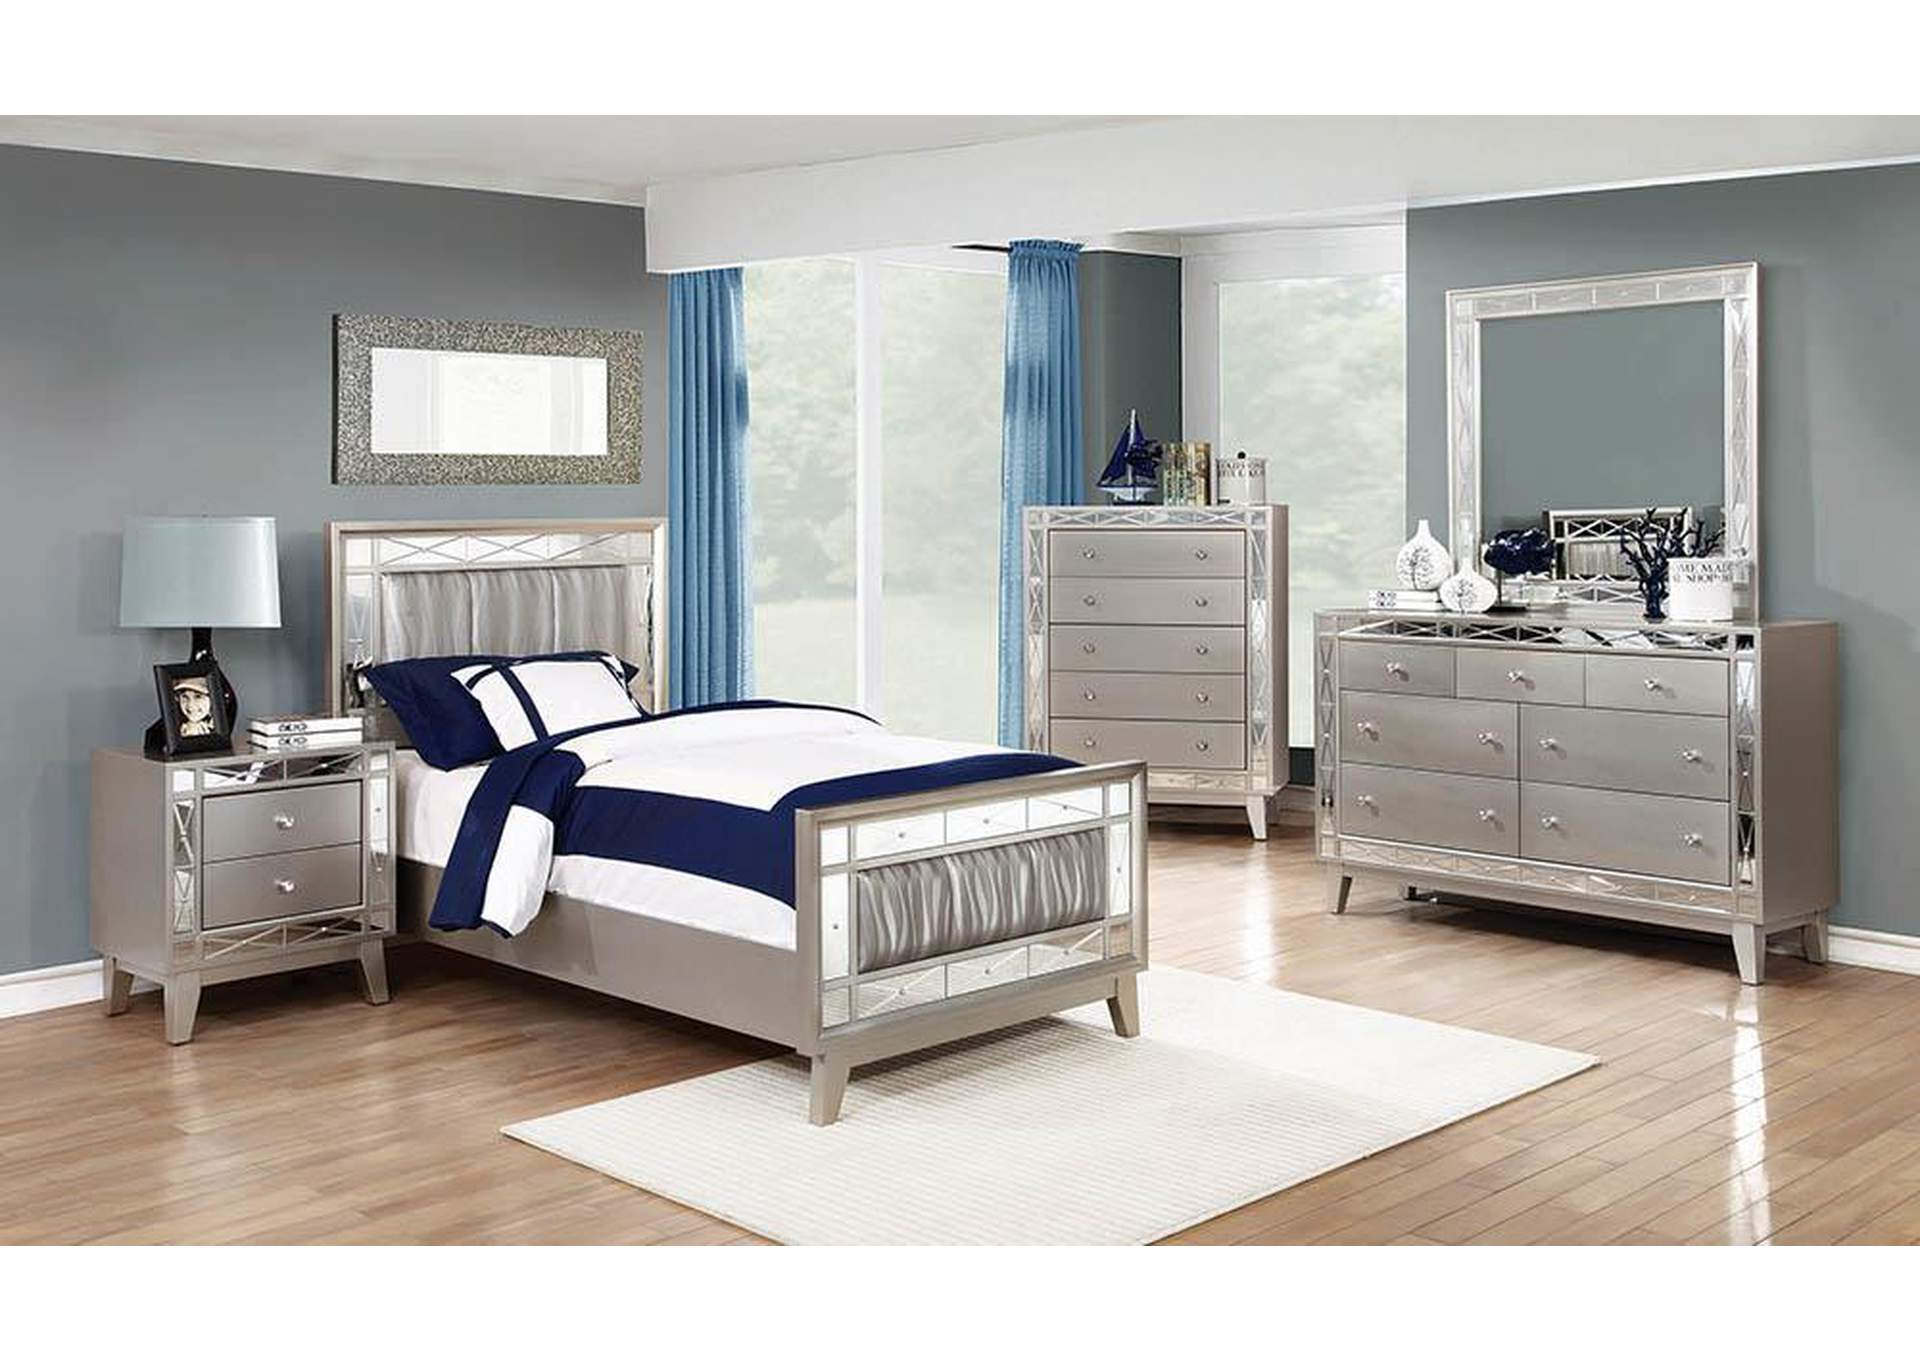 Leighton Metallic Mercury Twin Bed,Coaster Furniture